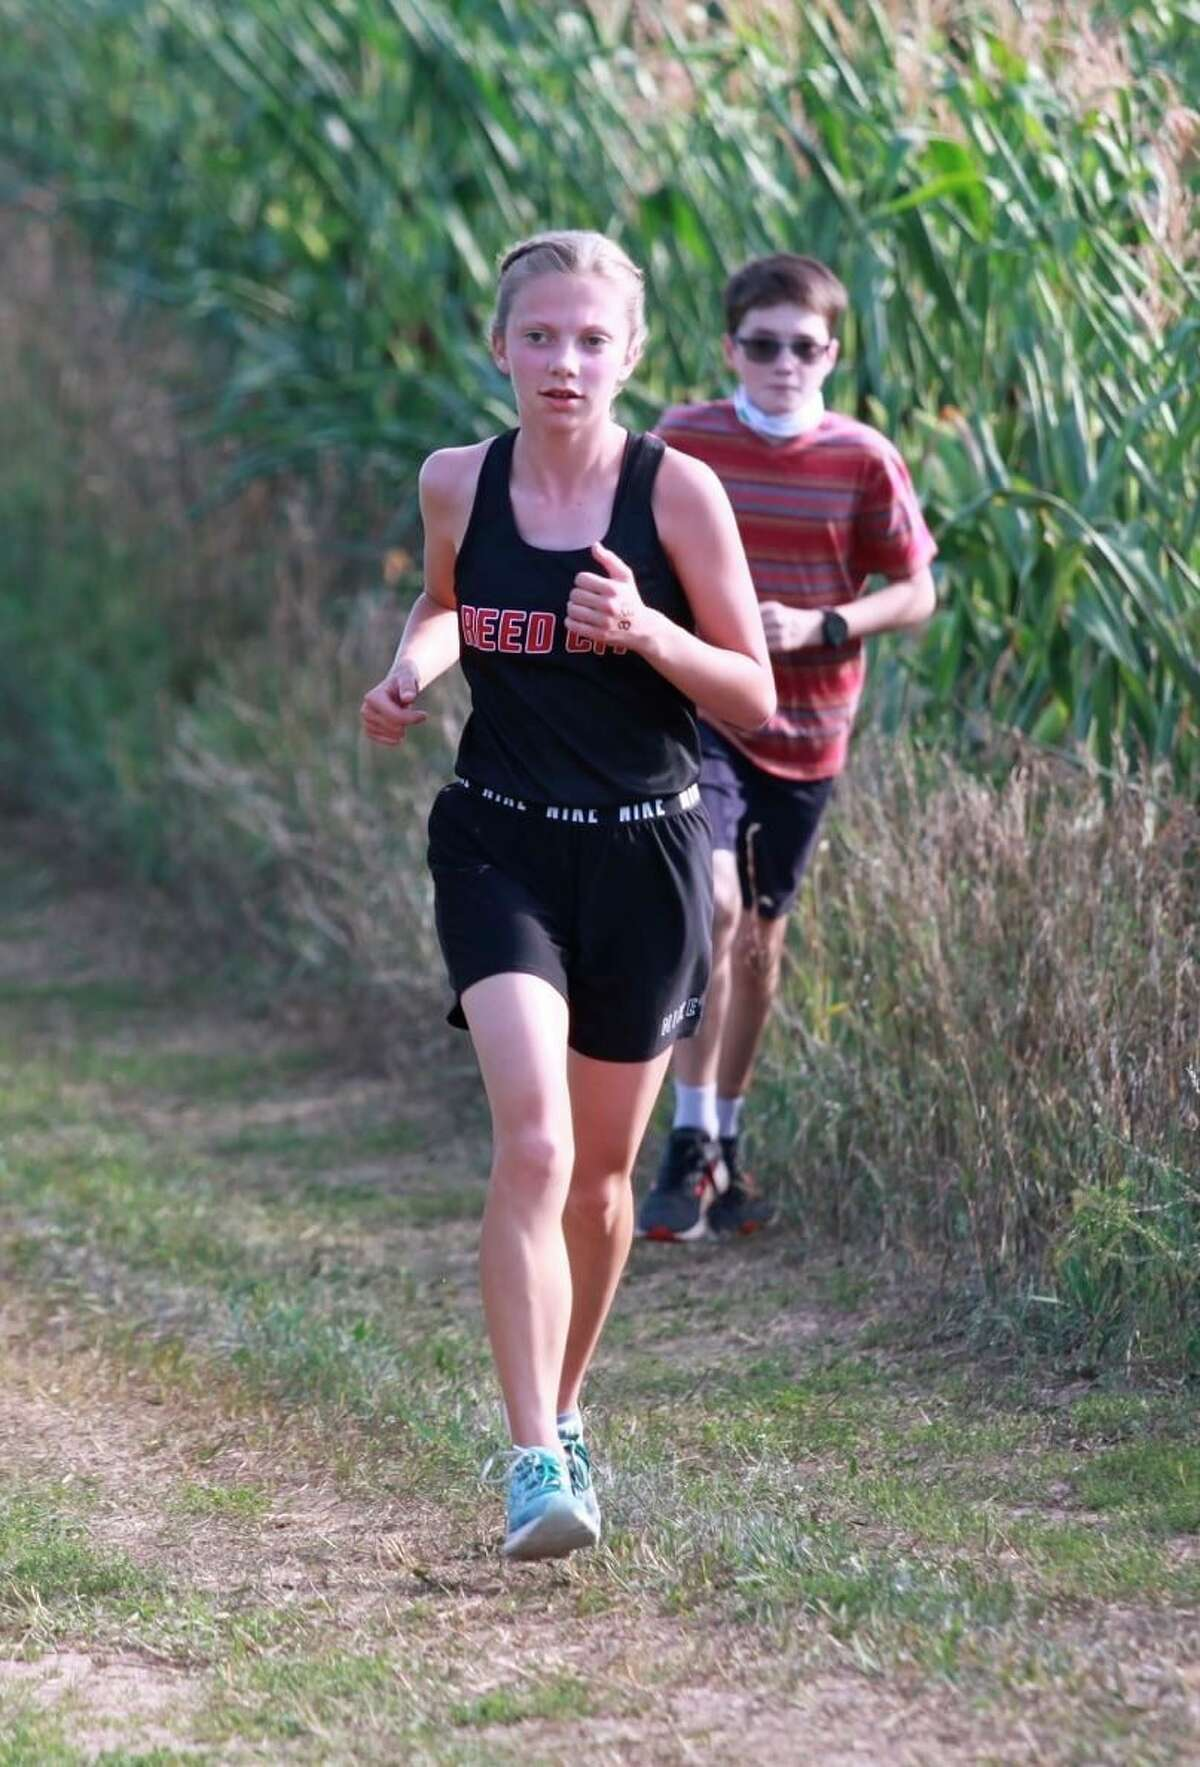 Reed City's McKenna Miller and her teammates have had strong races so far this season. (Pioneer file photo)